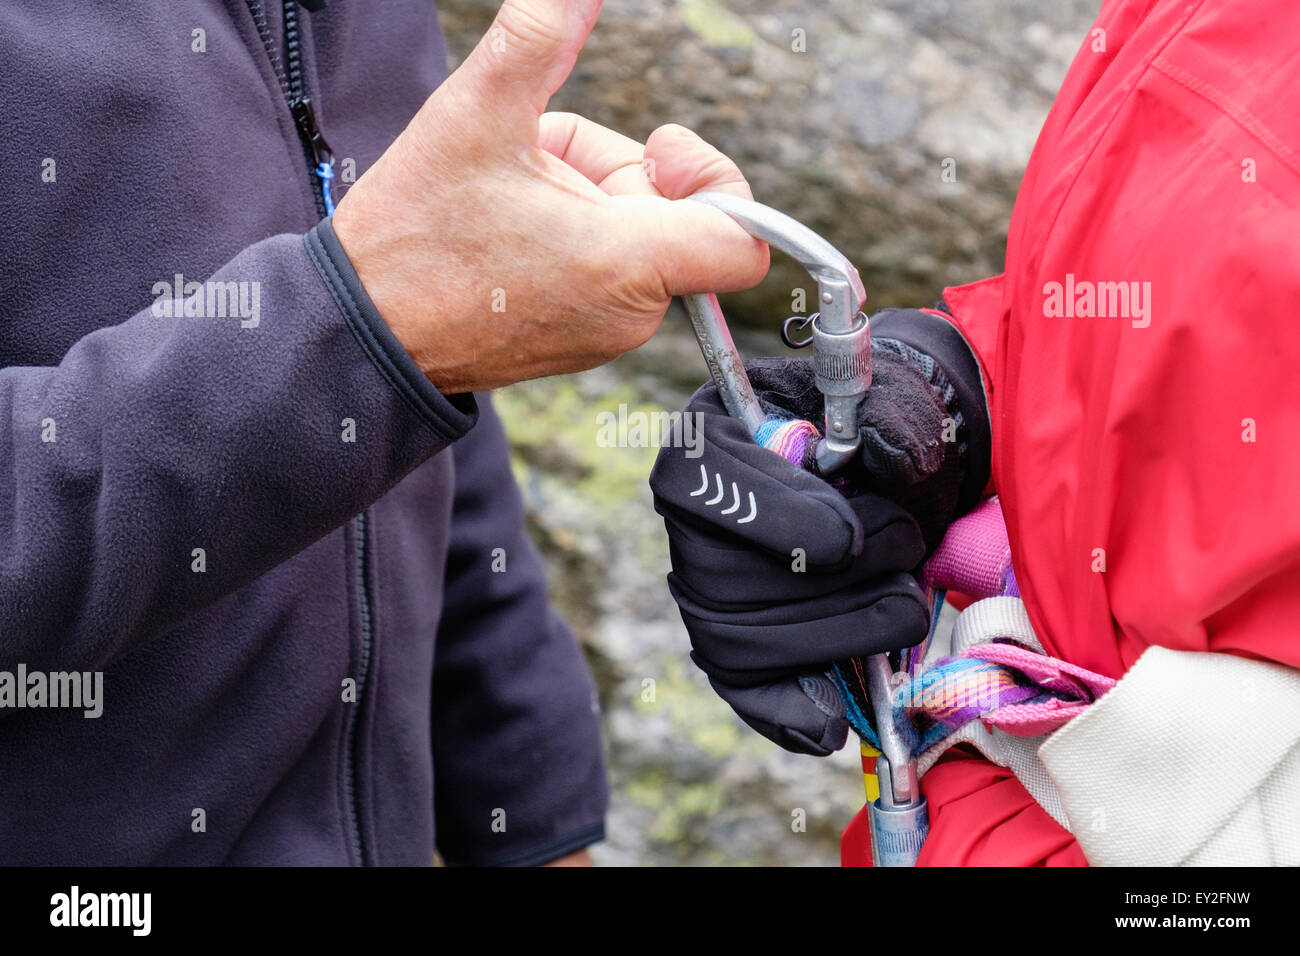 Climber teaching a novice to fasten a karabiner to a climbing harness. Wales, UK, Britain - Stock Image